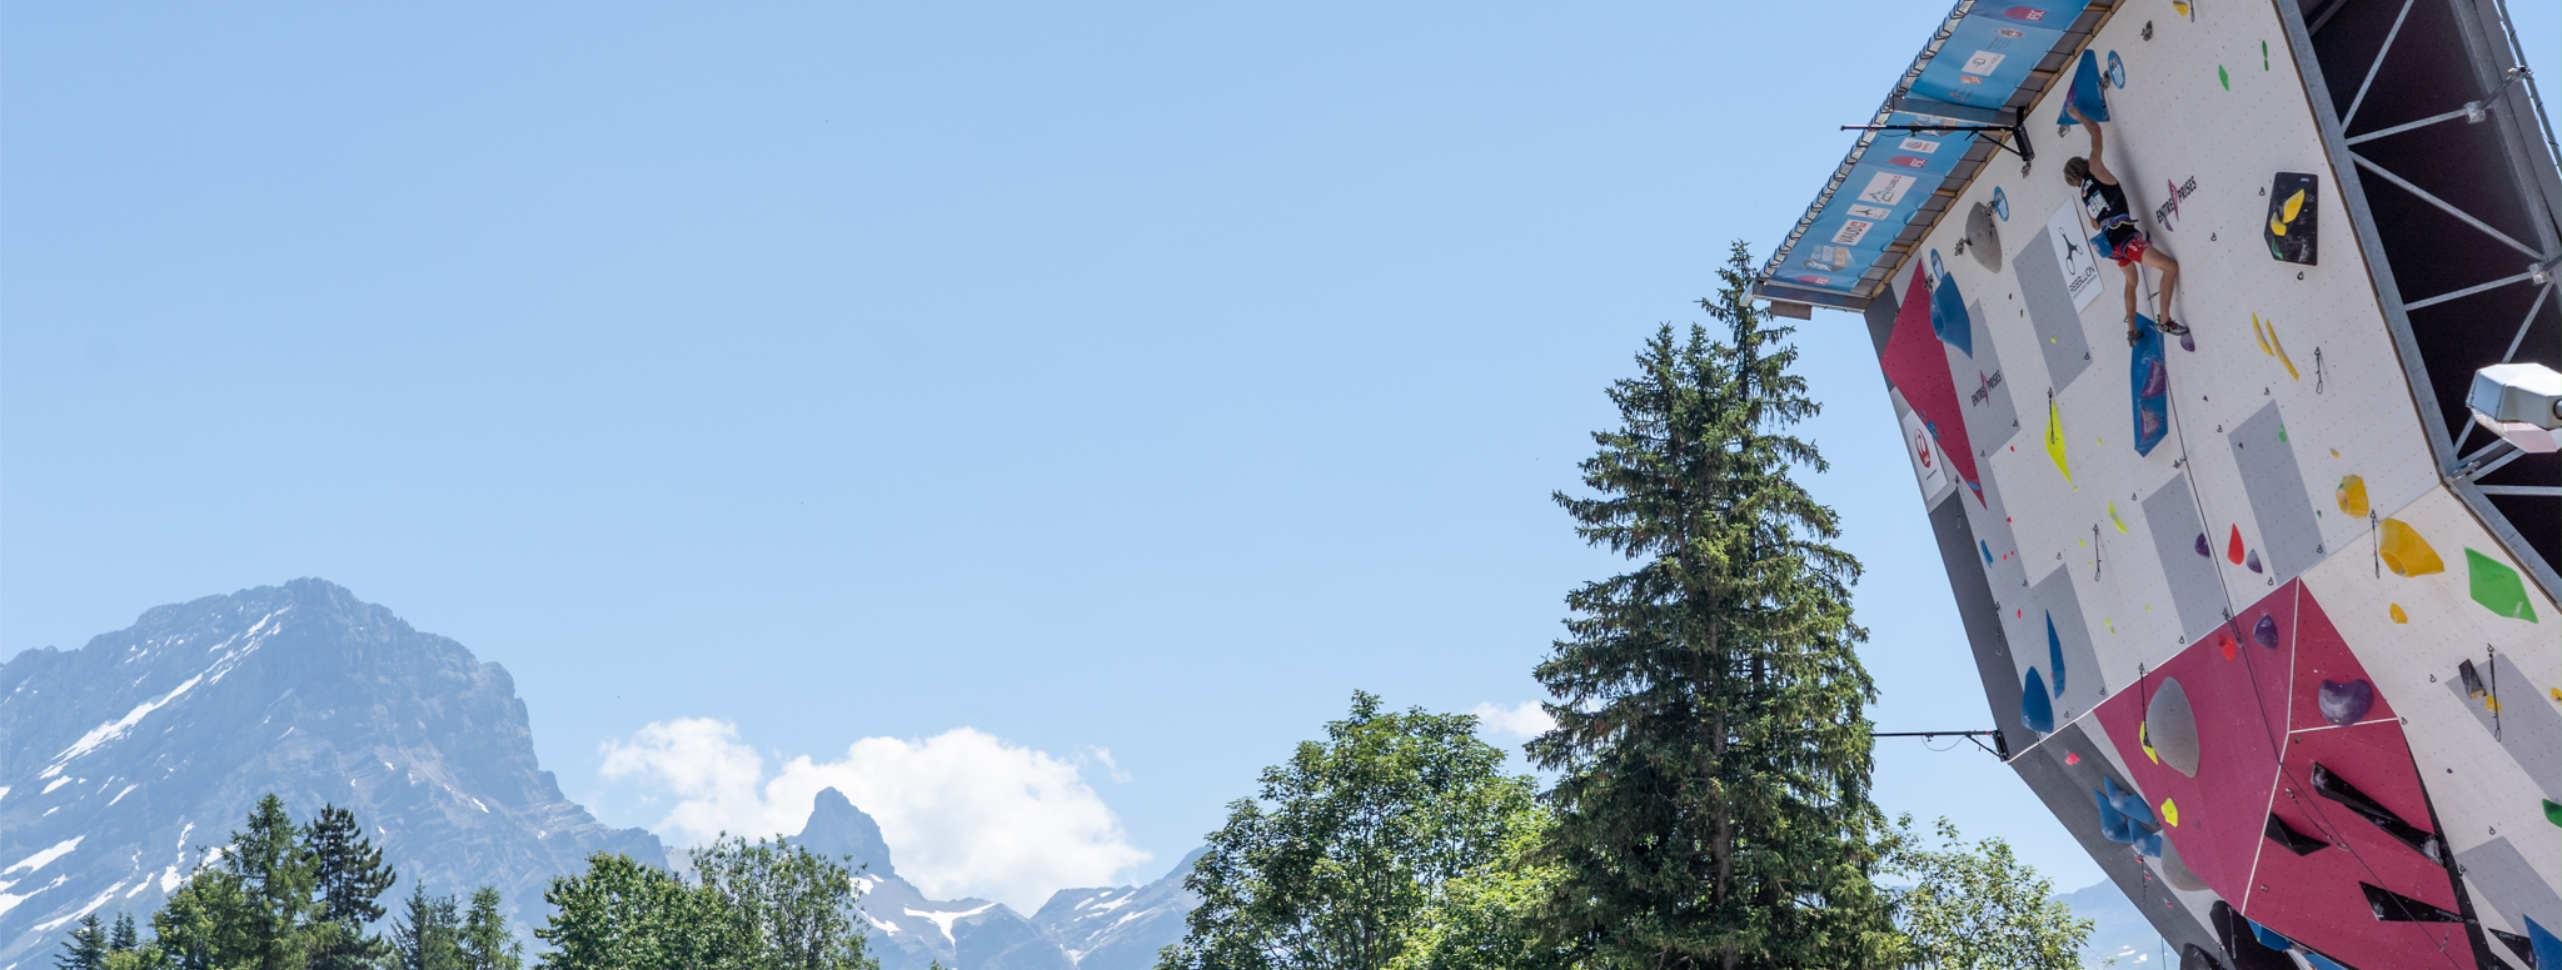 IFSC LEAD AND SPEED WORLD CUP IN VILLARS, SWITZERLAND CONFIRMED